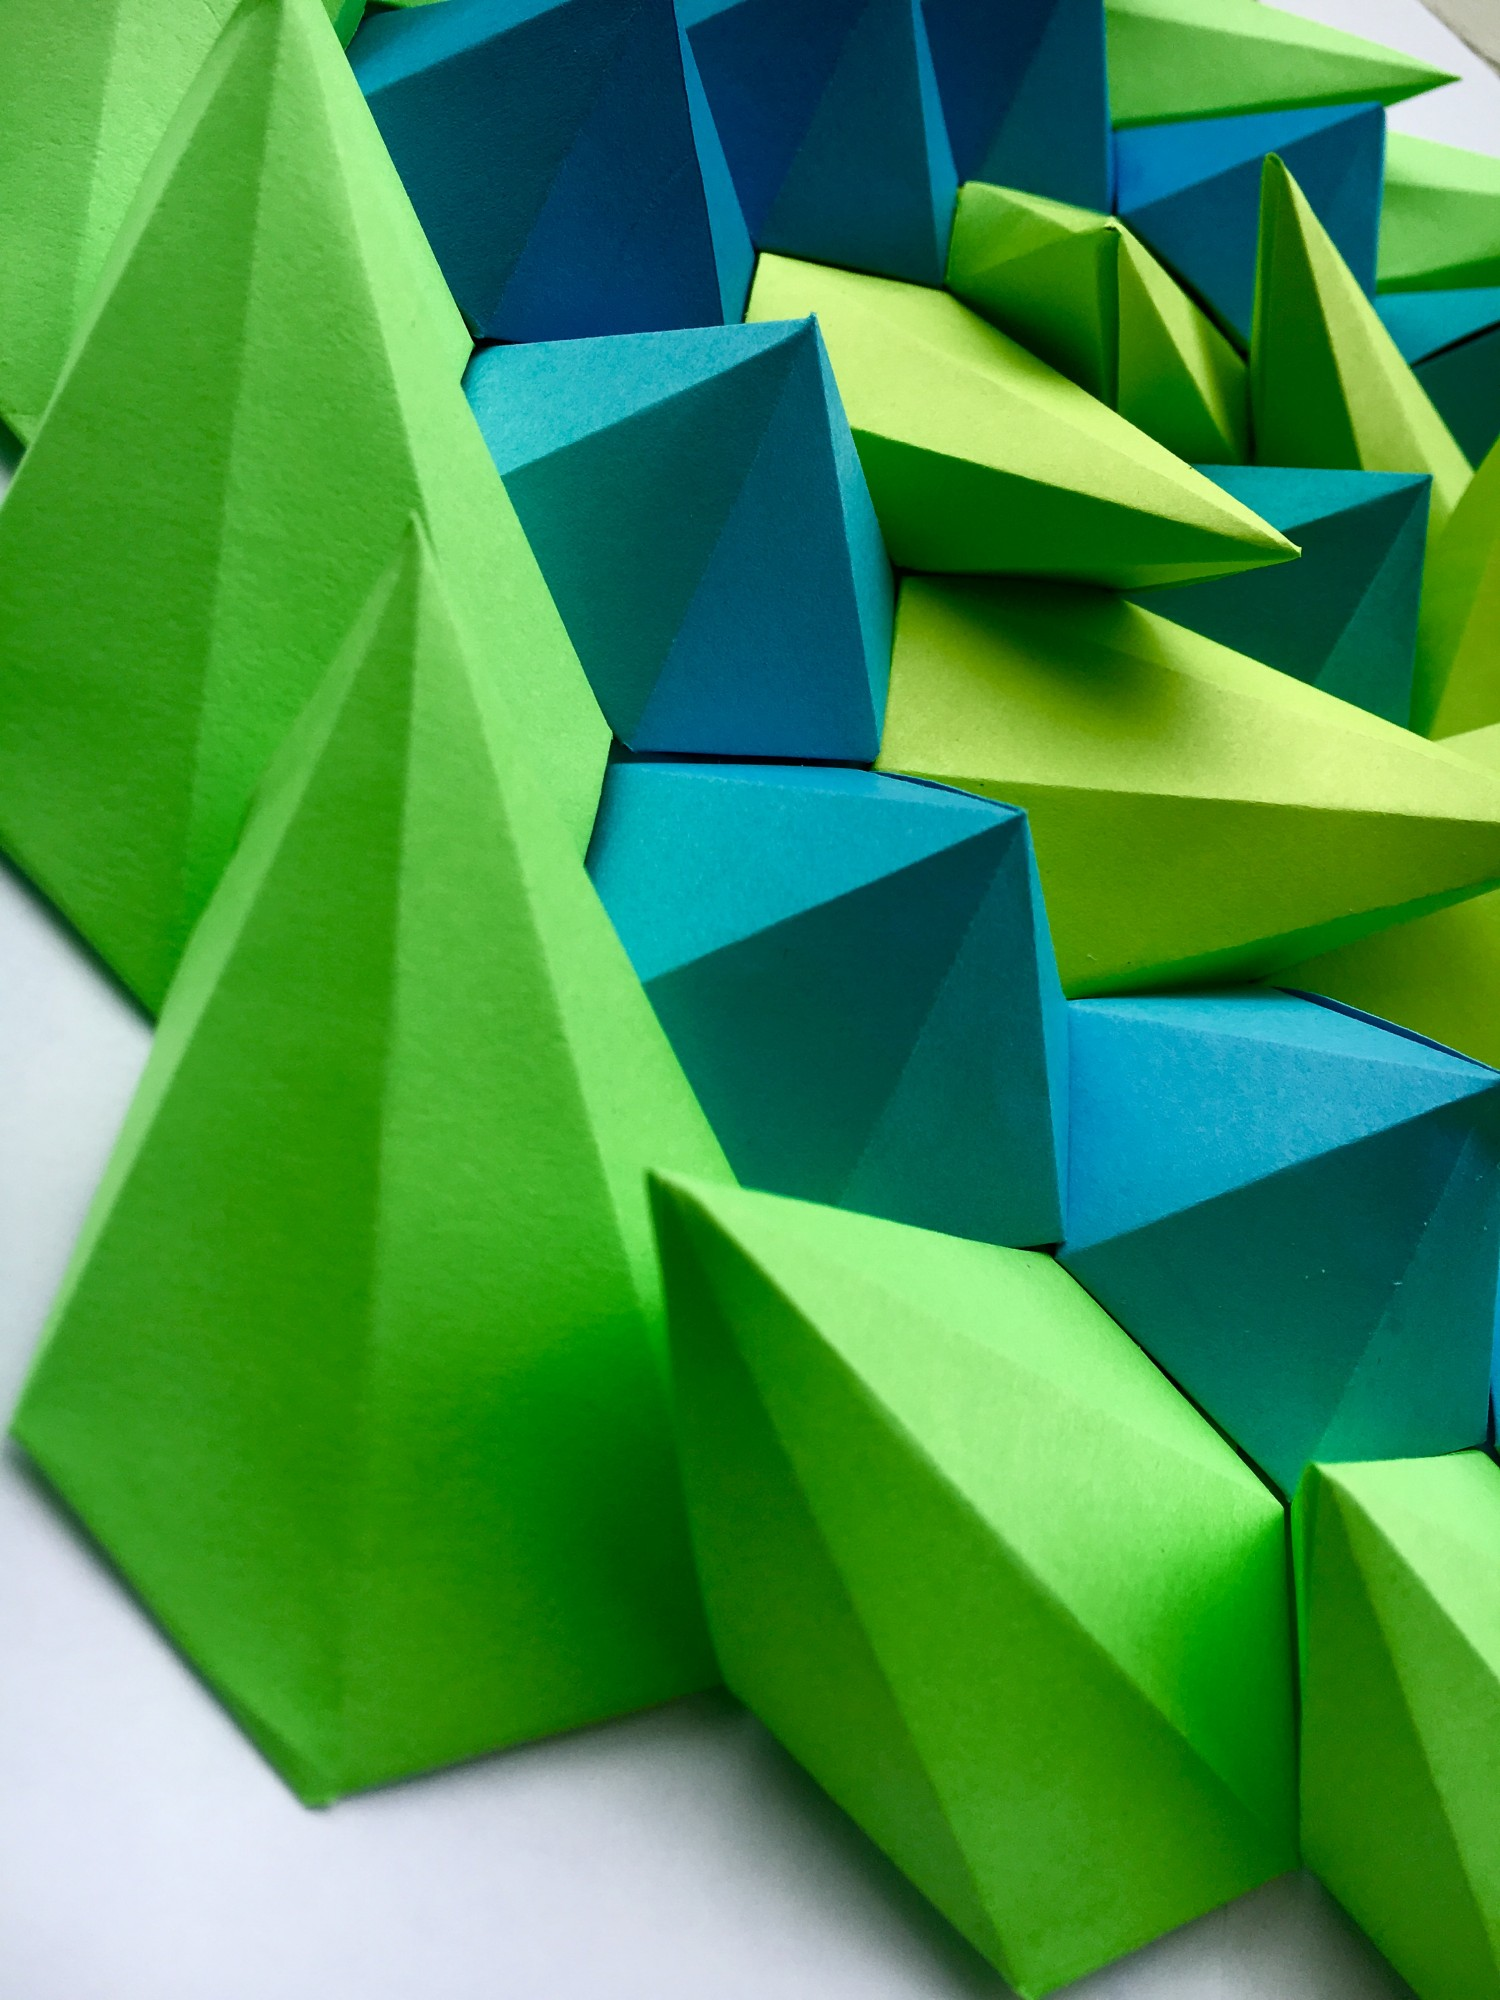 Mathematical-Inspired-3D-Paper-Kaleidoscope-Tessellations-Brandon-Clark-Strictlypaper11